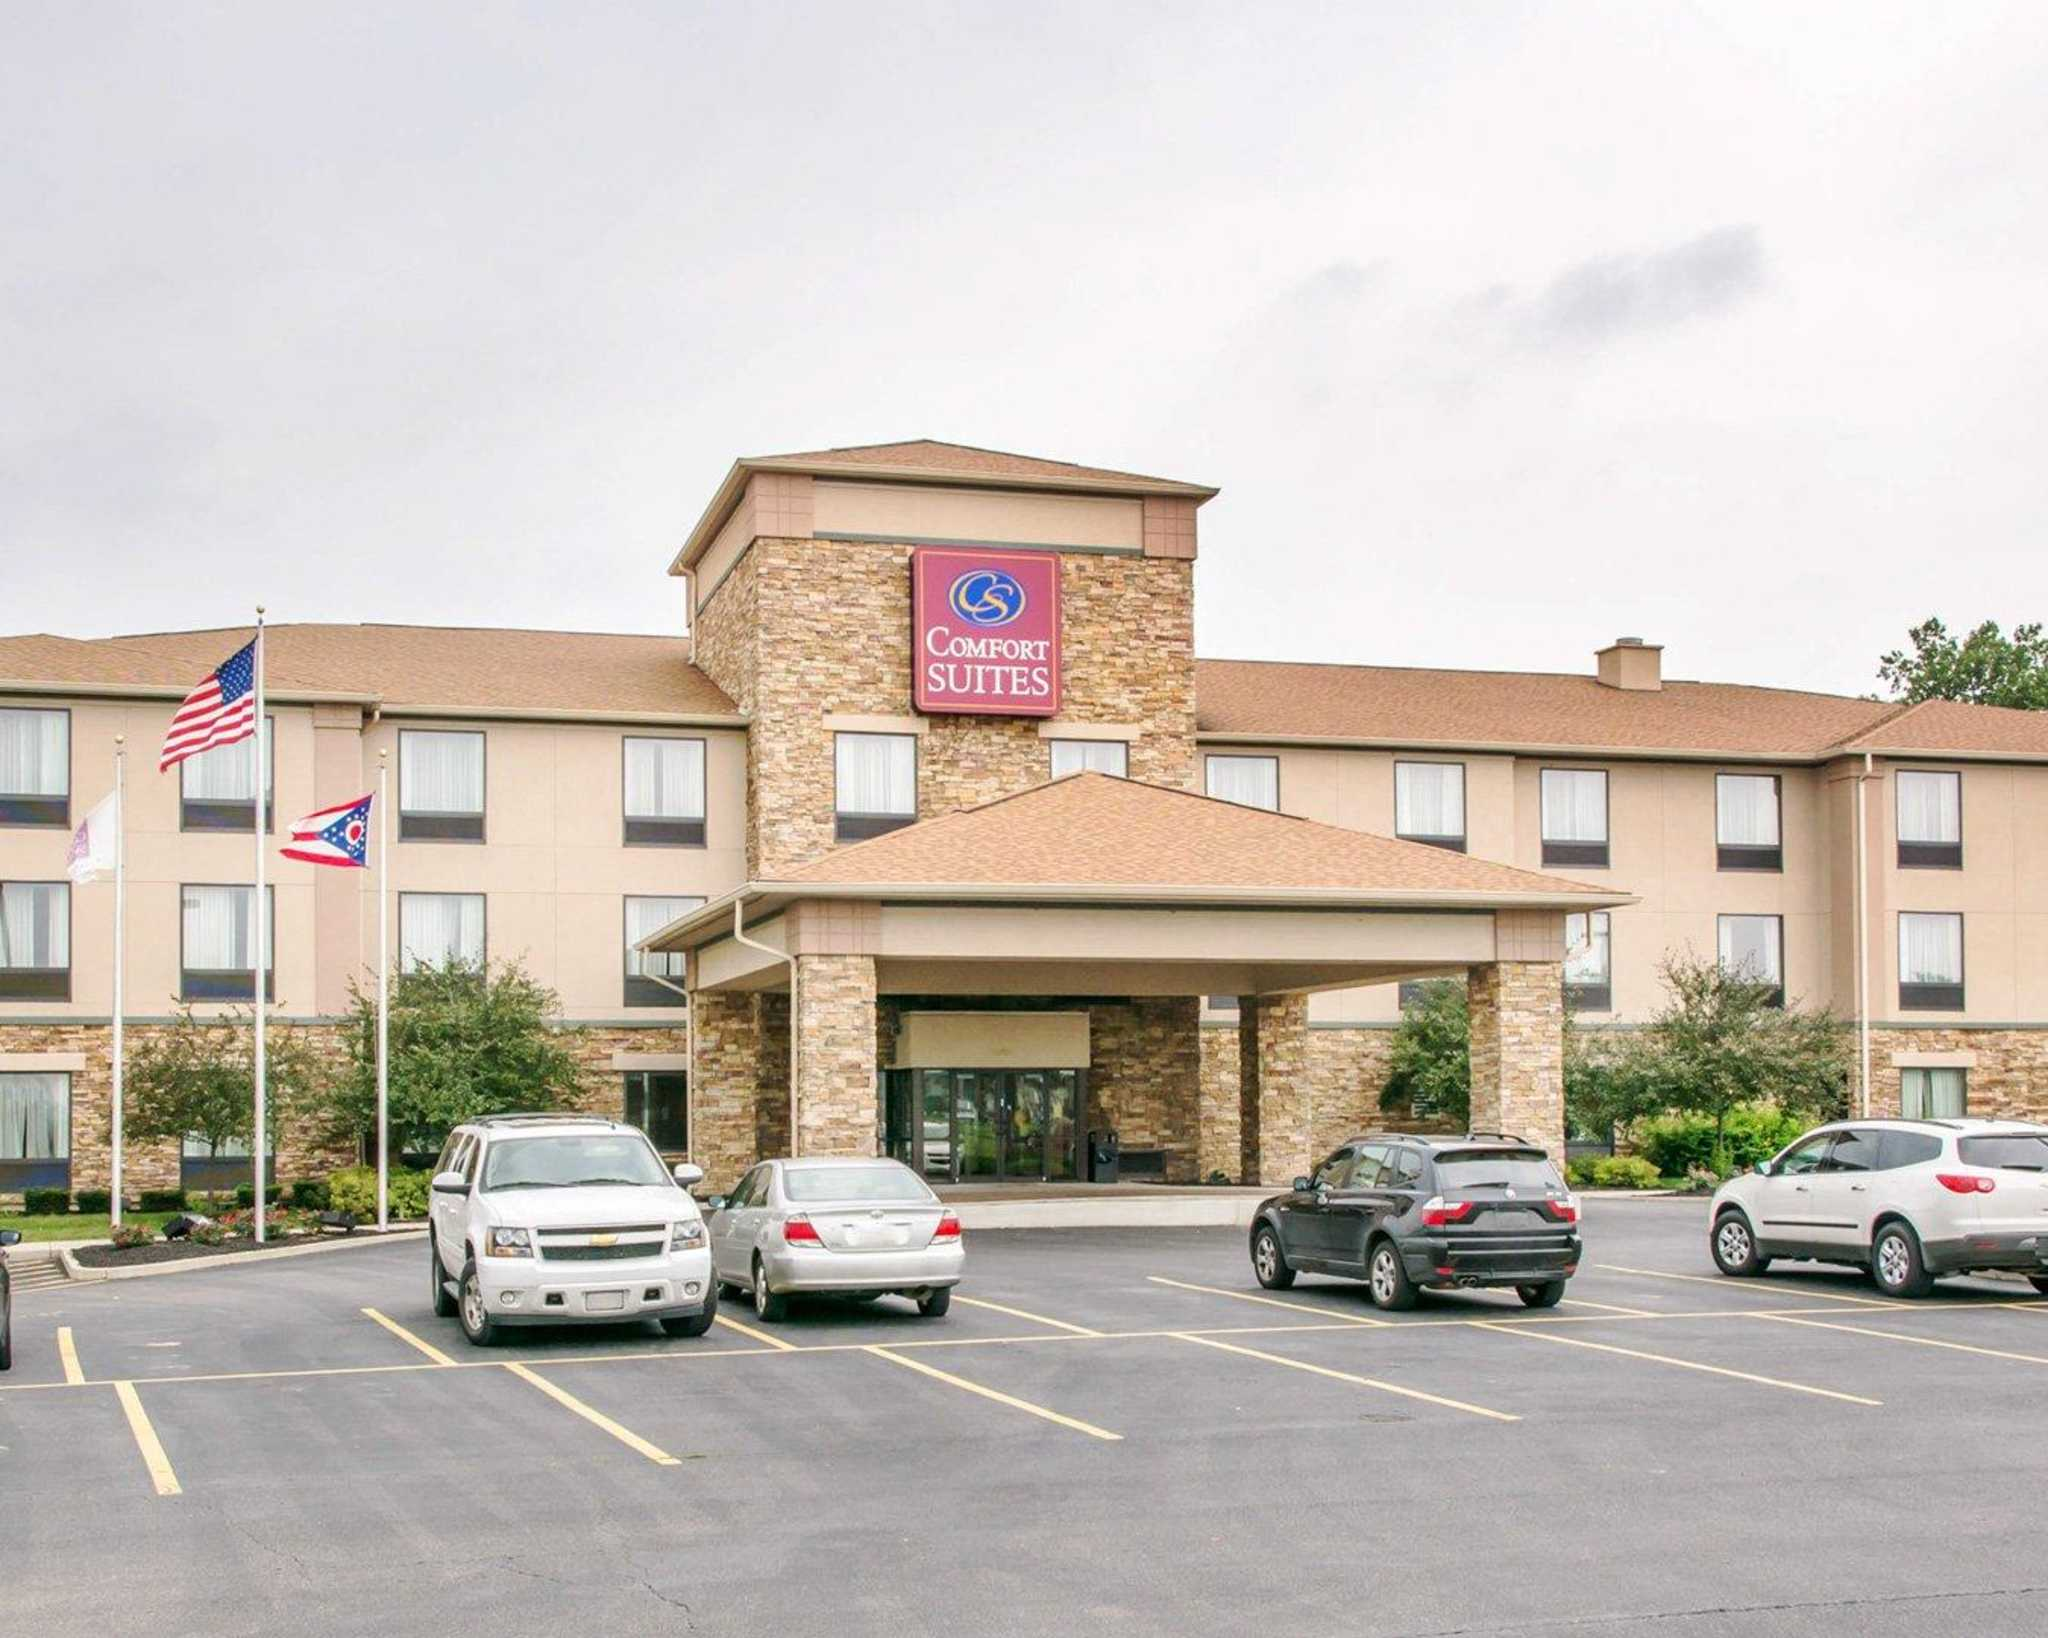 Best 30 Motels in Dayton, OH with Reviews - YP.com